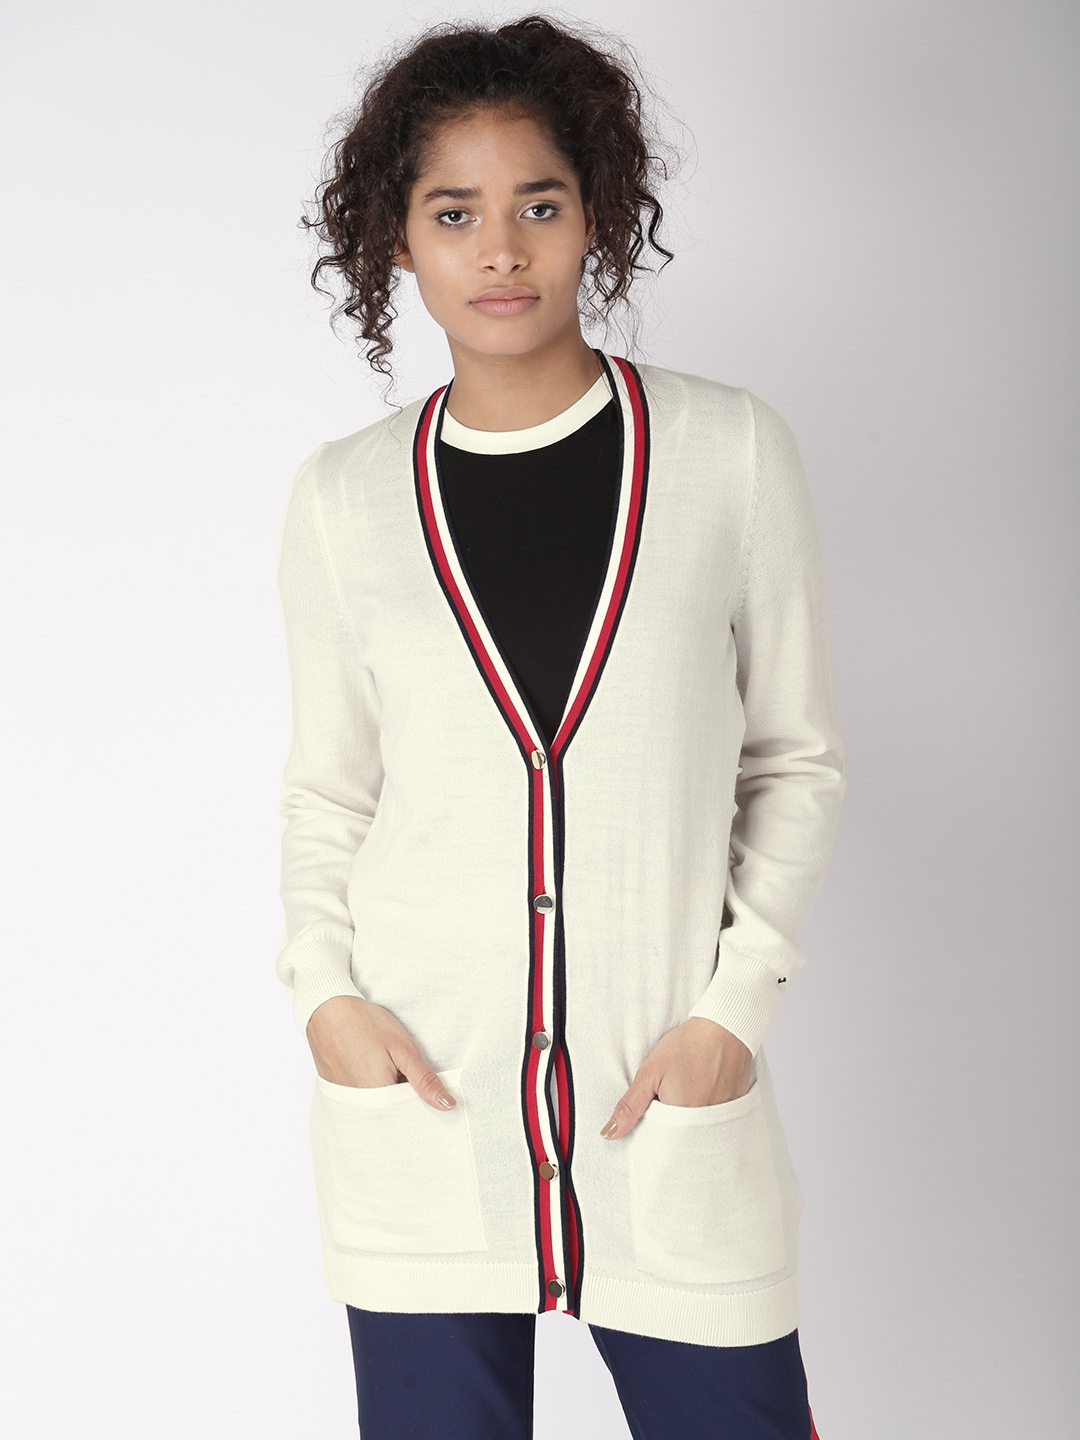 458726b373 Buy Tommy Hilfiger Women White Solid Cardigan - Sweaters for Women ...